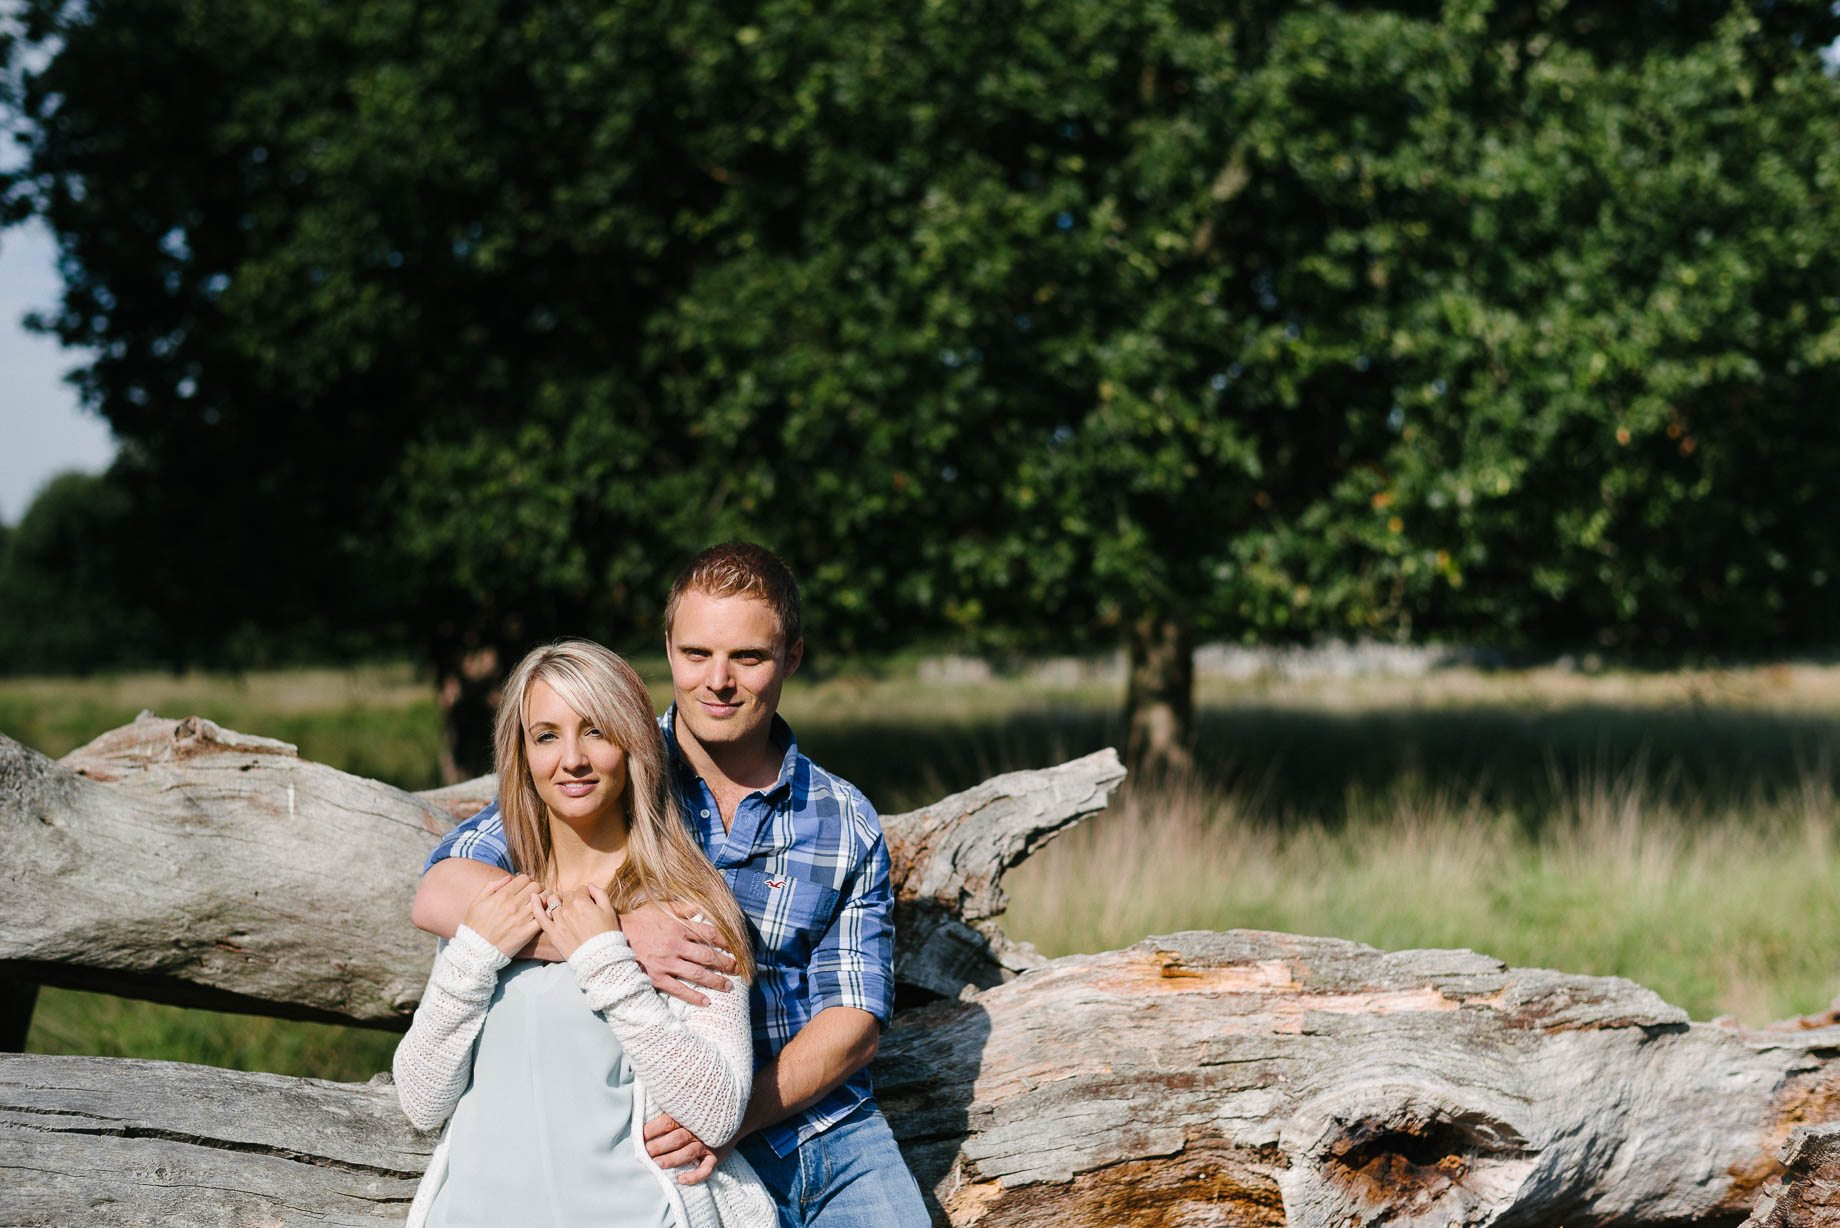 Richmond Park wedding photography - Lauren and Nick (17 of 29)